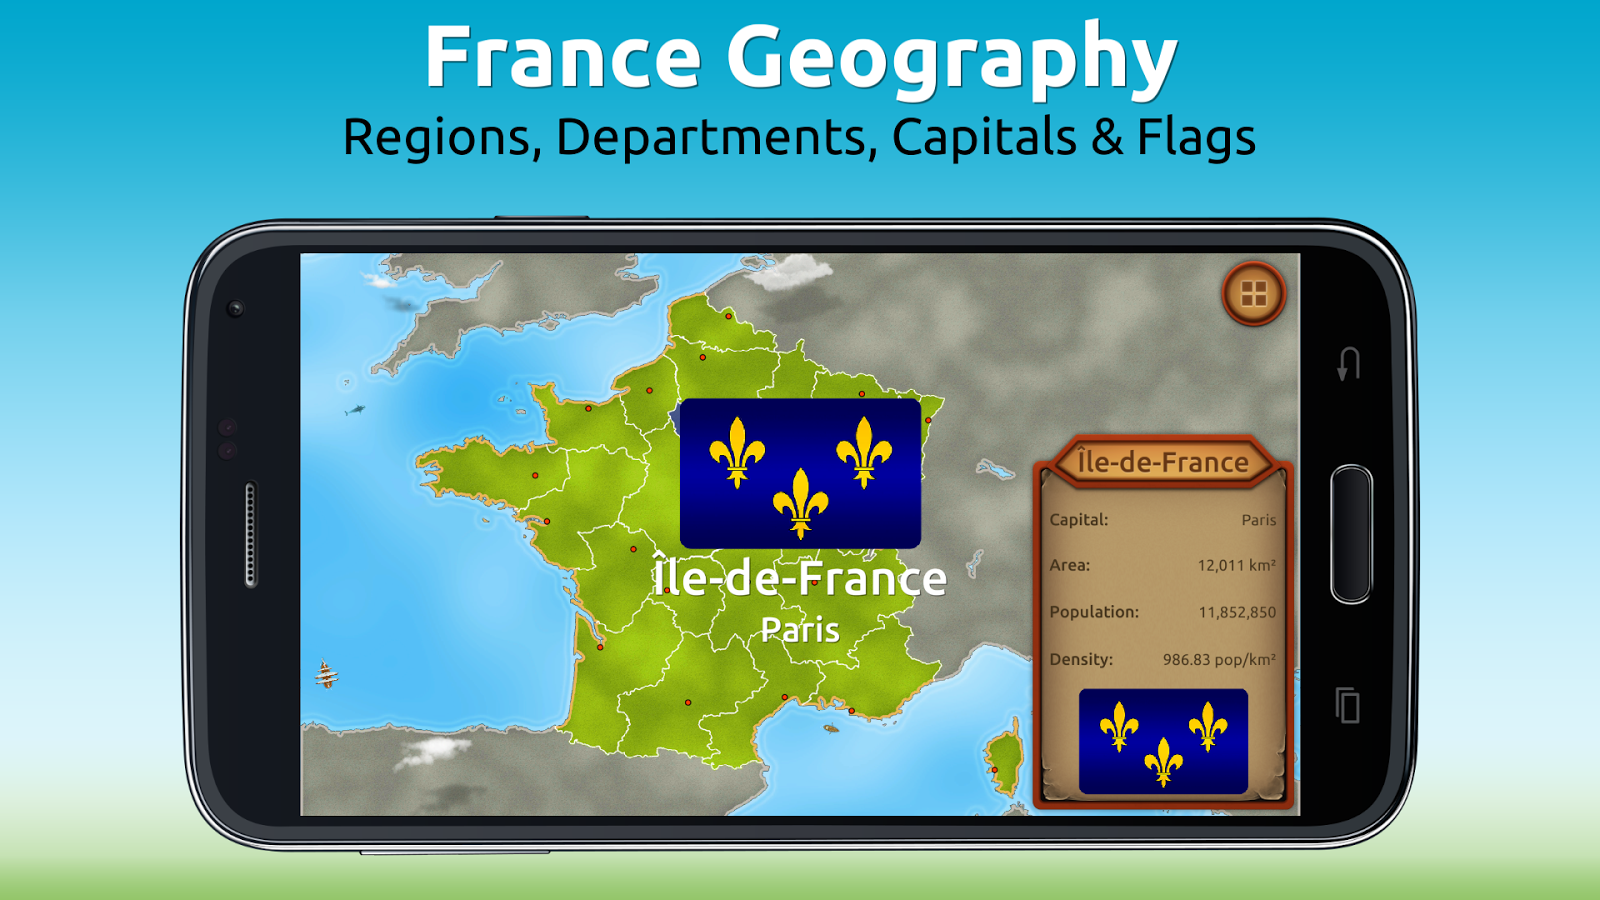 GeoExpert - France Geography Screenshot